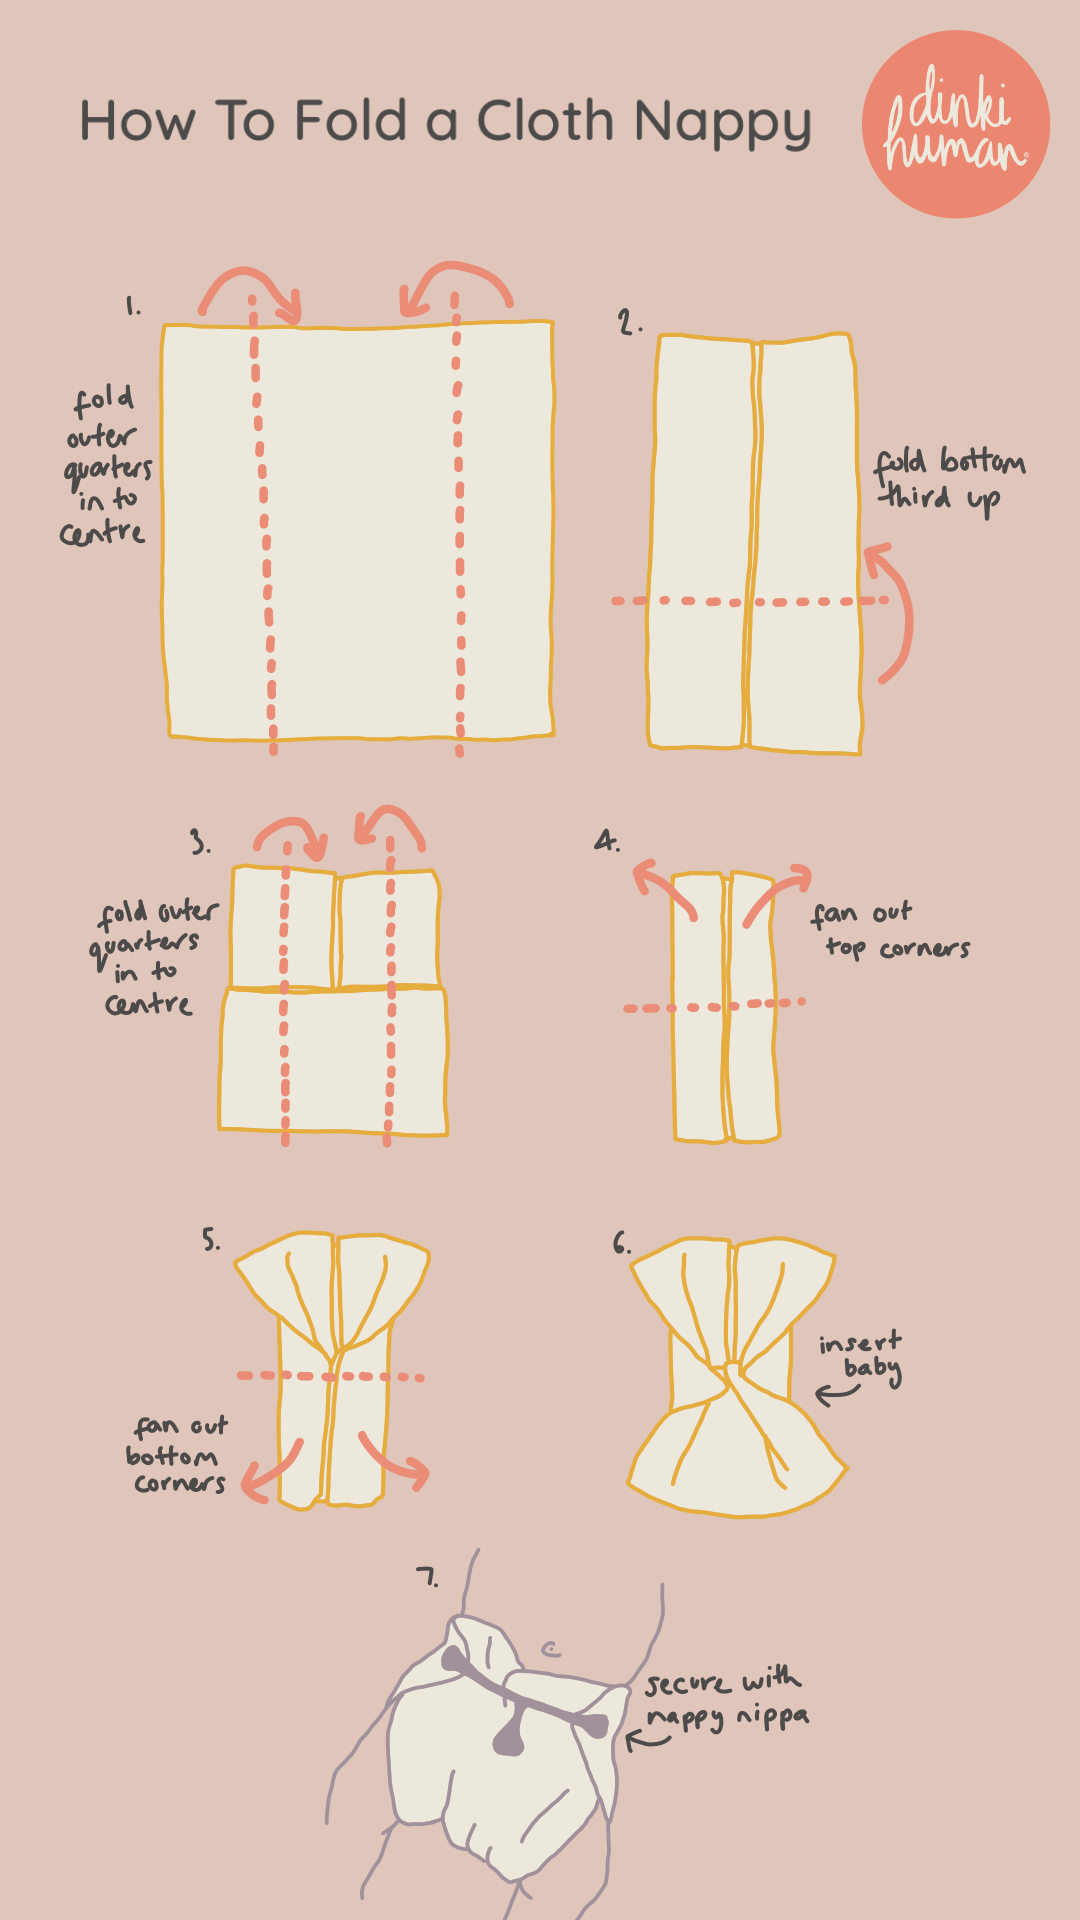 Dinki Human eco parenting blog - how to fold a cloth nappy